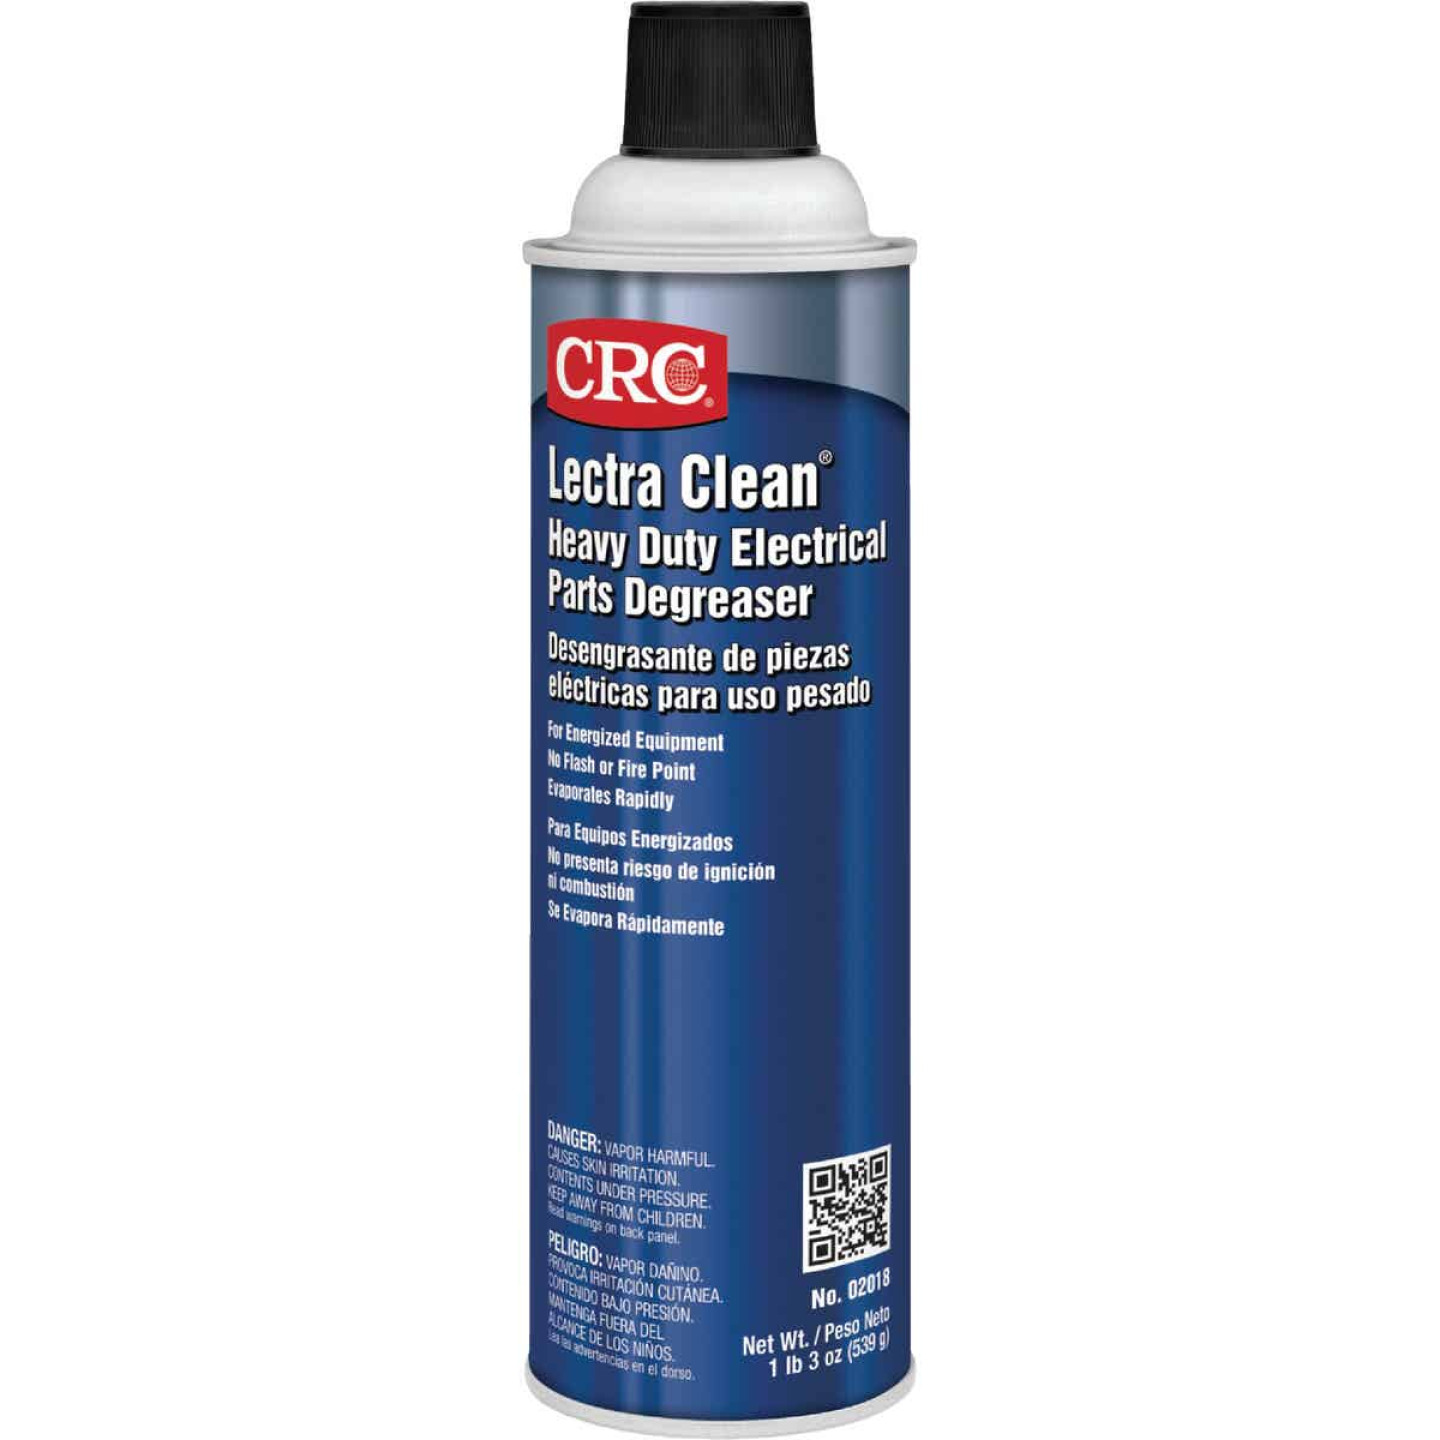 CRC Lectra Clean 19 Oz. Aerosol Heavy-Duty Electrical Degreaser Image 1